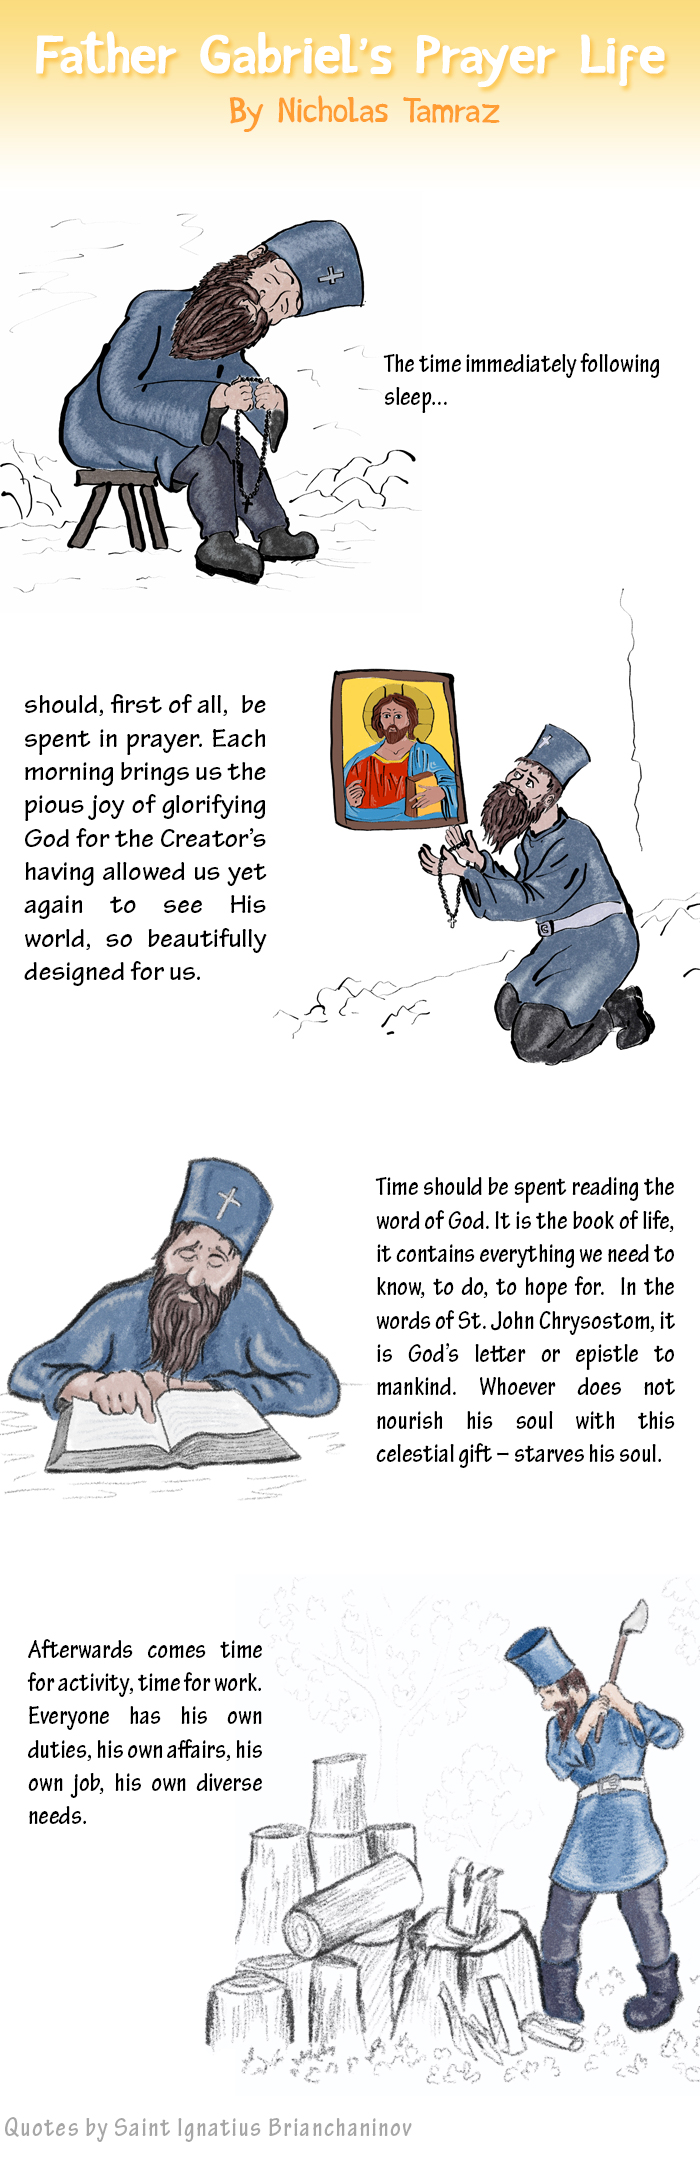 Father Gabriel's Prayer Life web comic with quotes by Saint Ignatius Brianchaninov